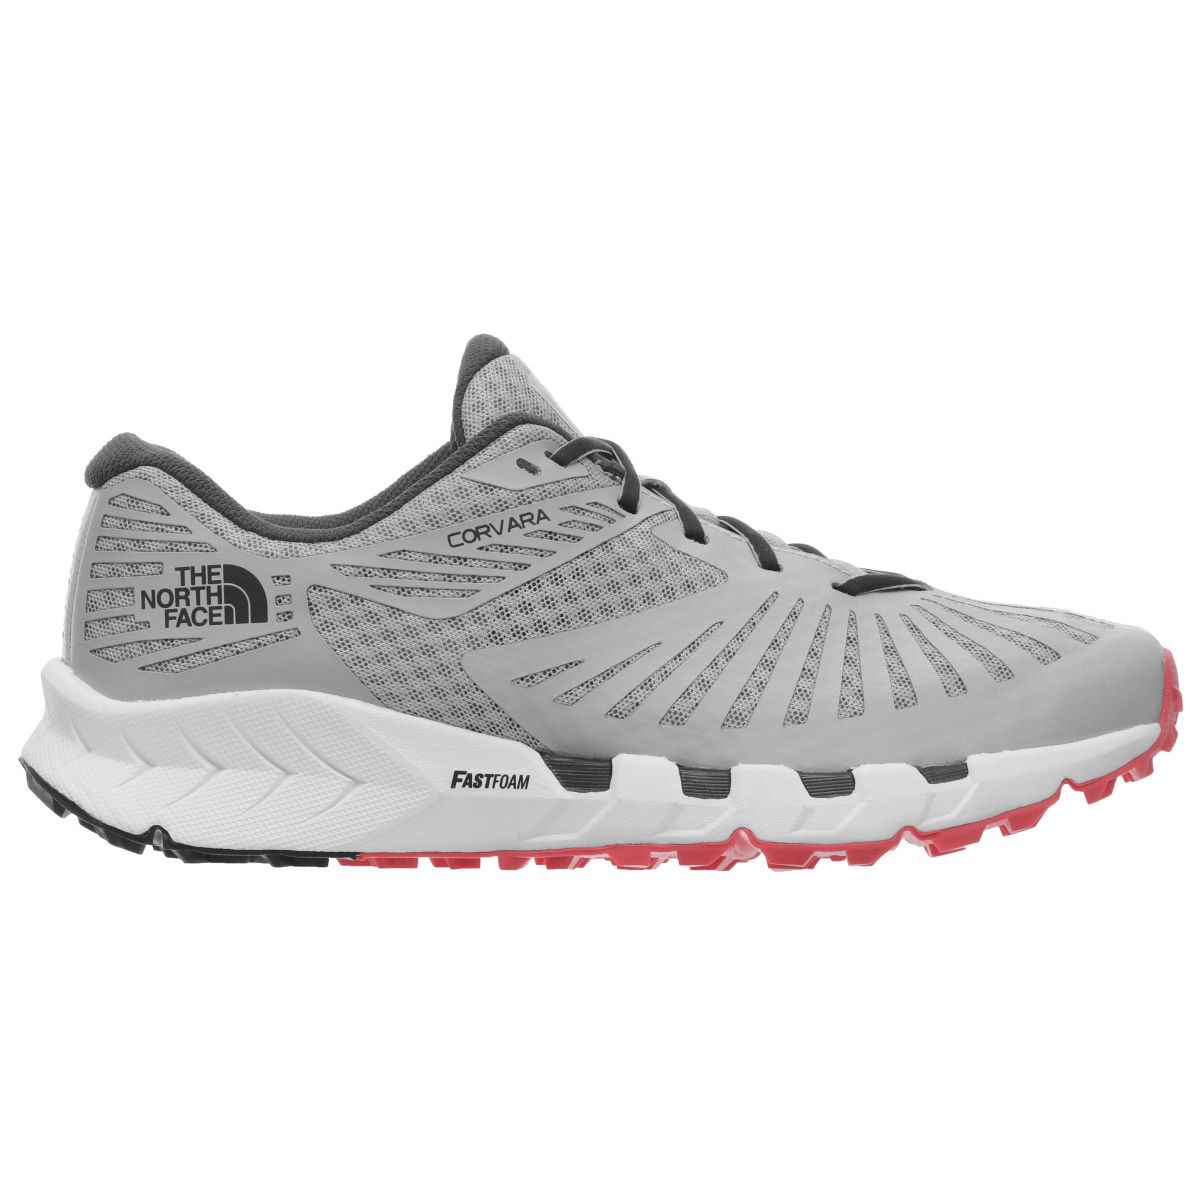 The North Face The North Face Womens Corvara Shoes   Running Shoes